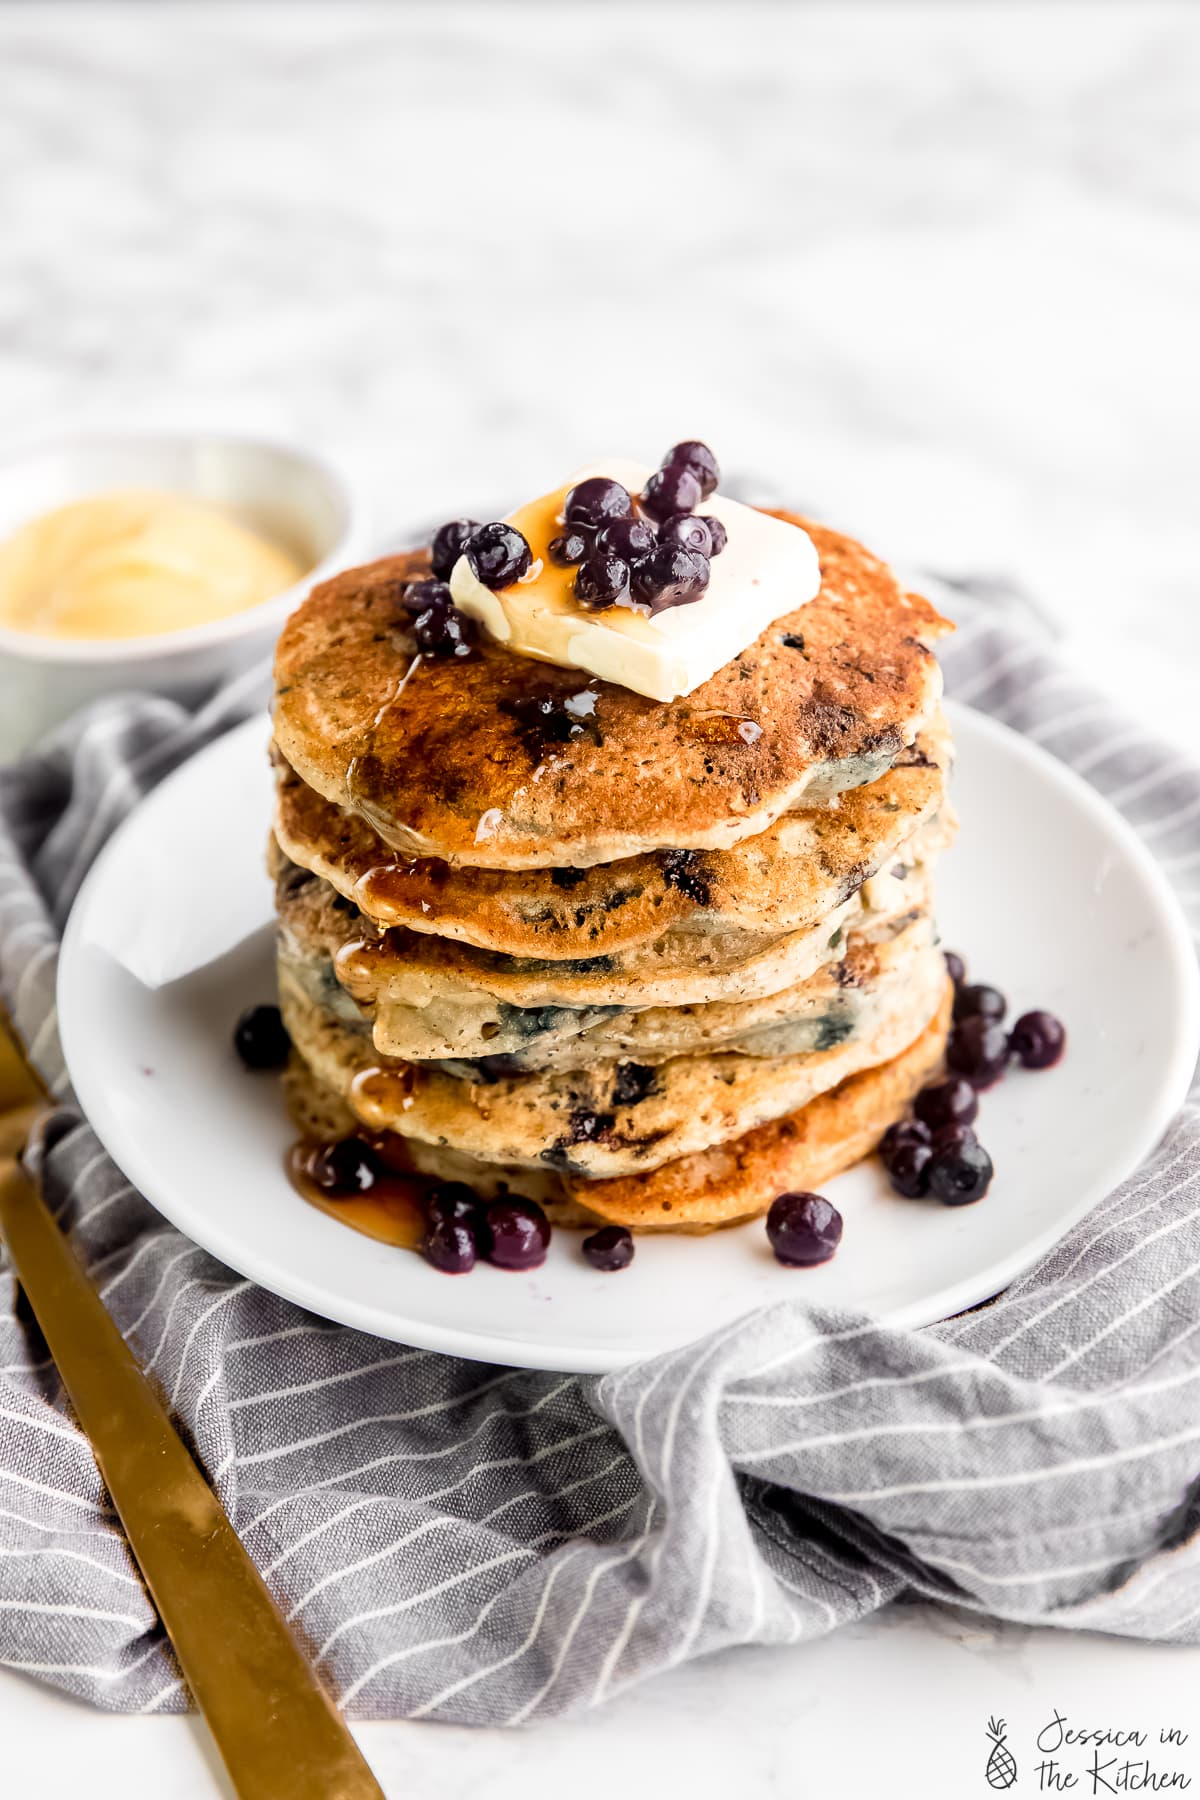 Vegan pancakes stacked on a plate, covered with syrup and blueberries.